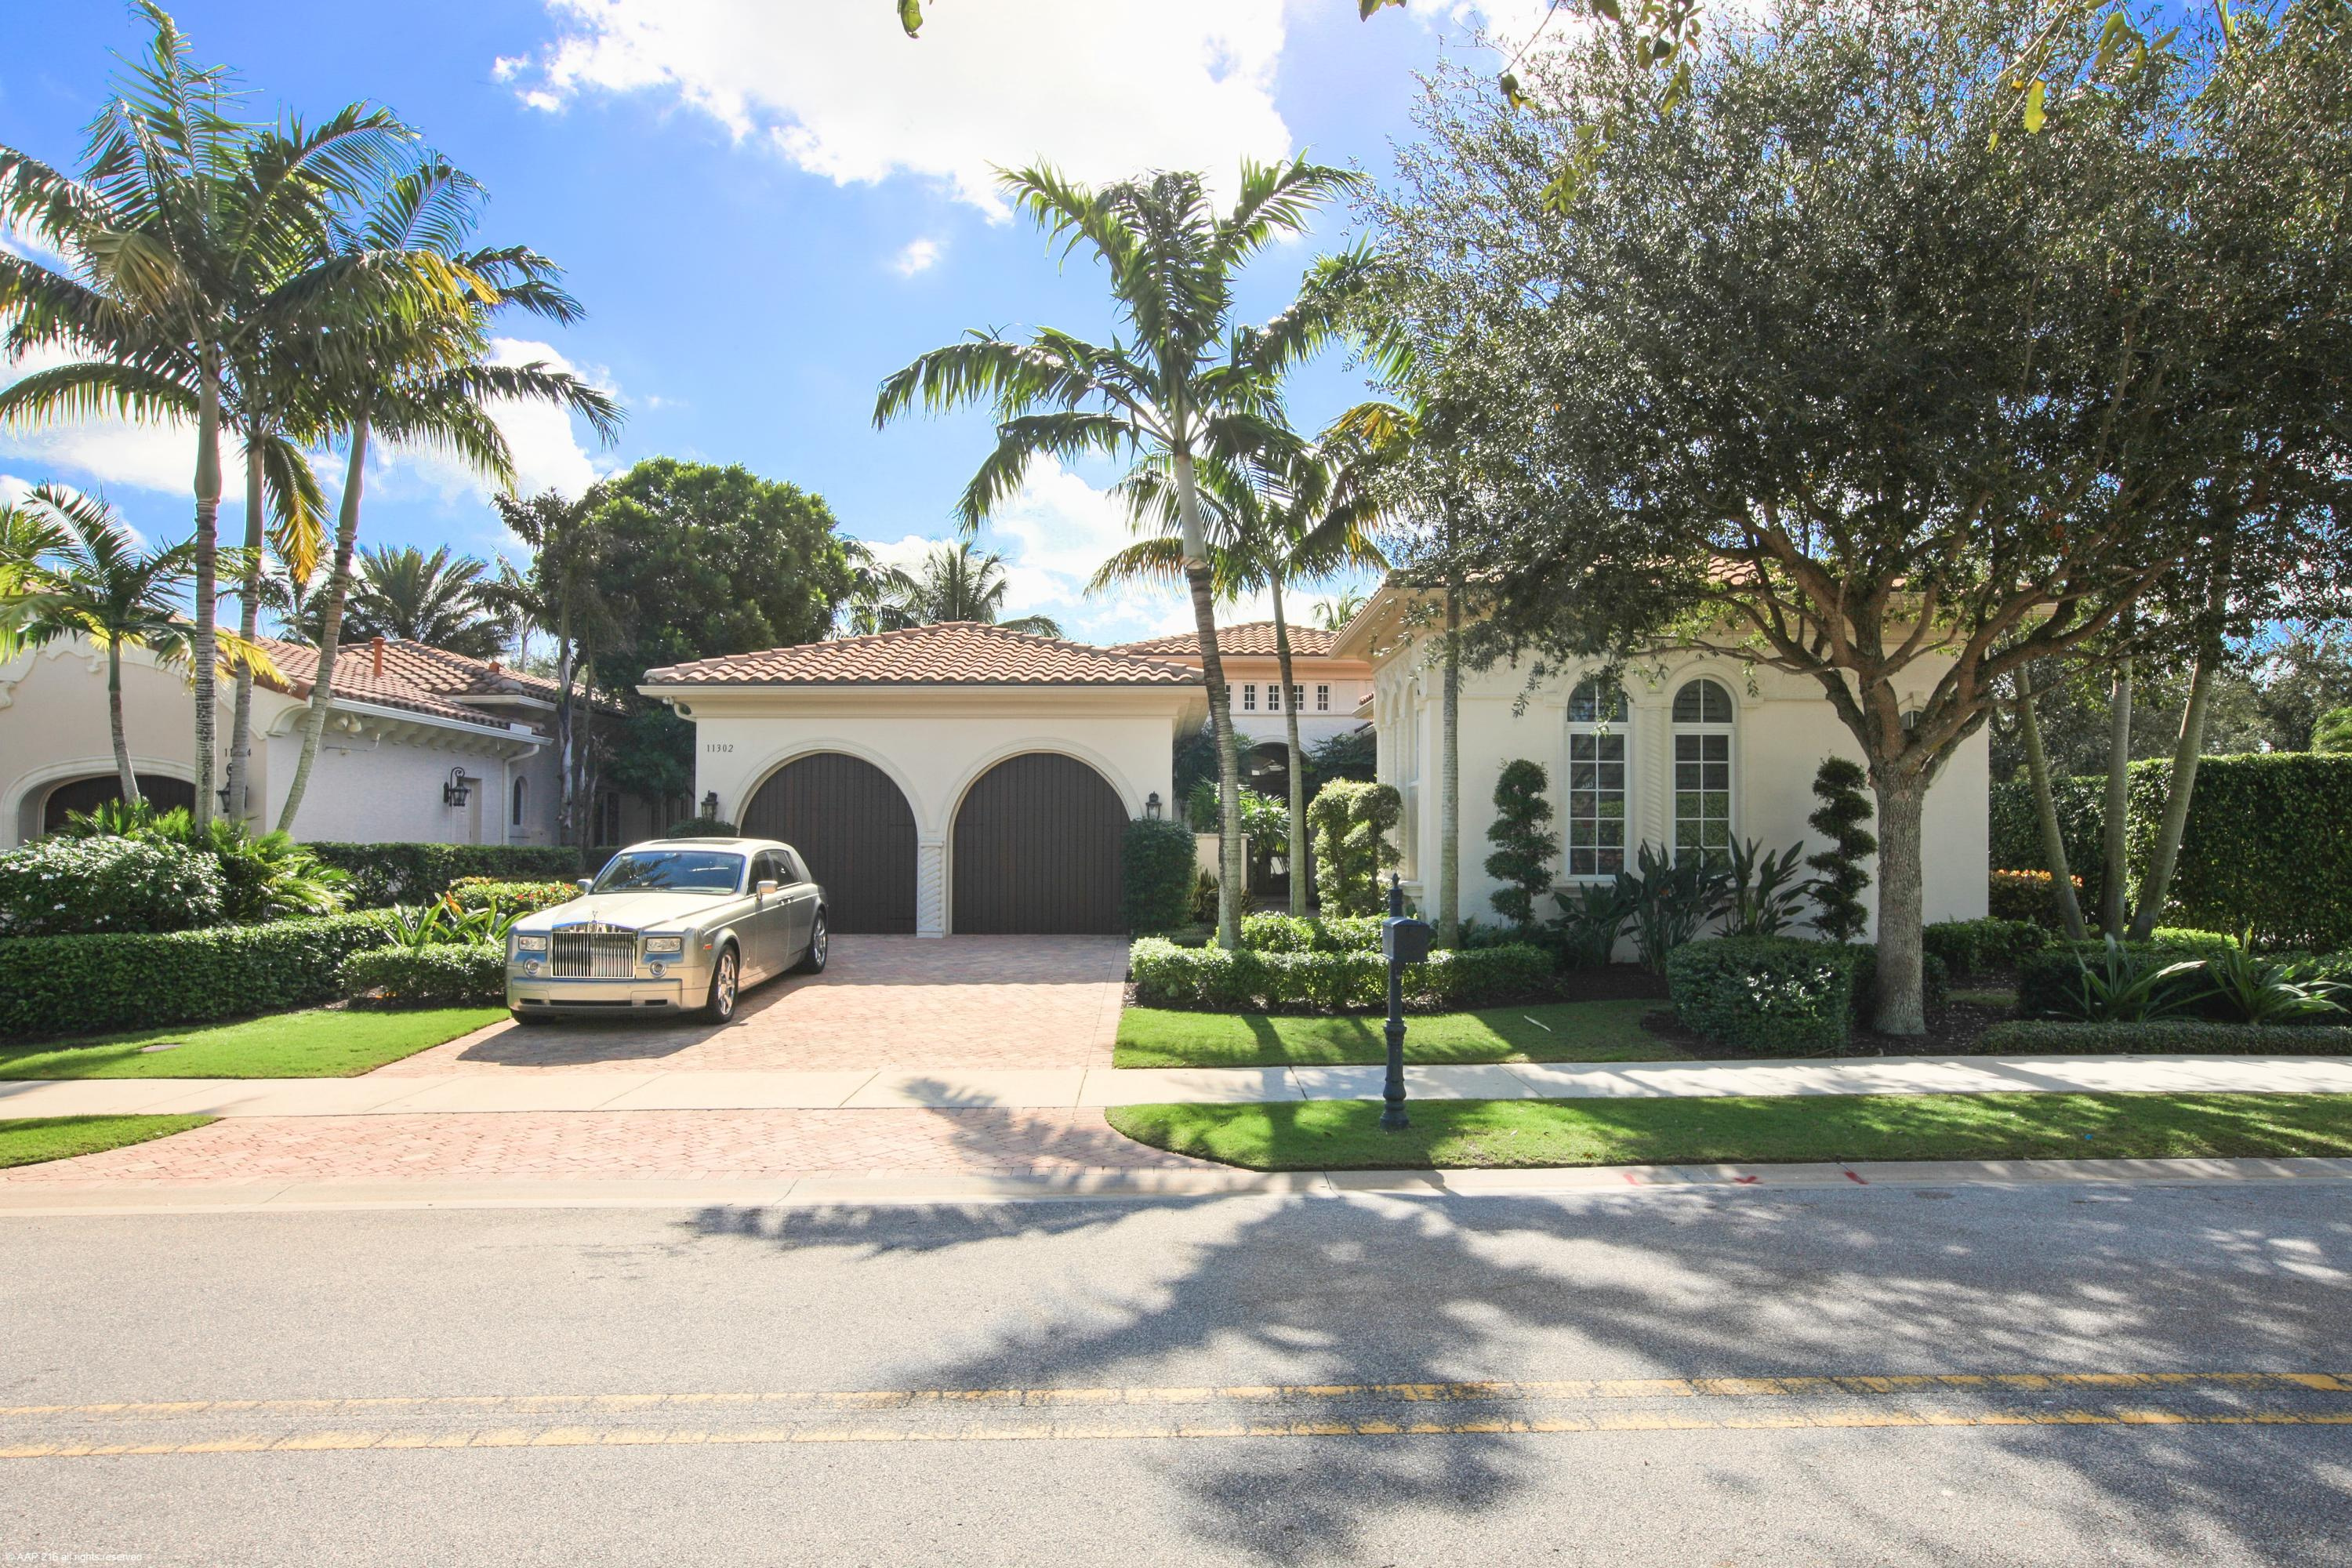 11302 Caladium Lane, Palm Beach Gardens, Florida 33418, 4 Bedrooms Bedrooms, ,4.2 BathroomsBathrooms,A,Single family,Caladium,RX-10546489